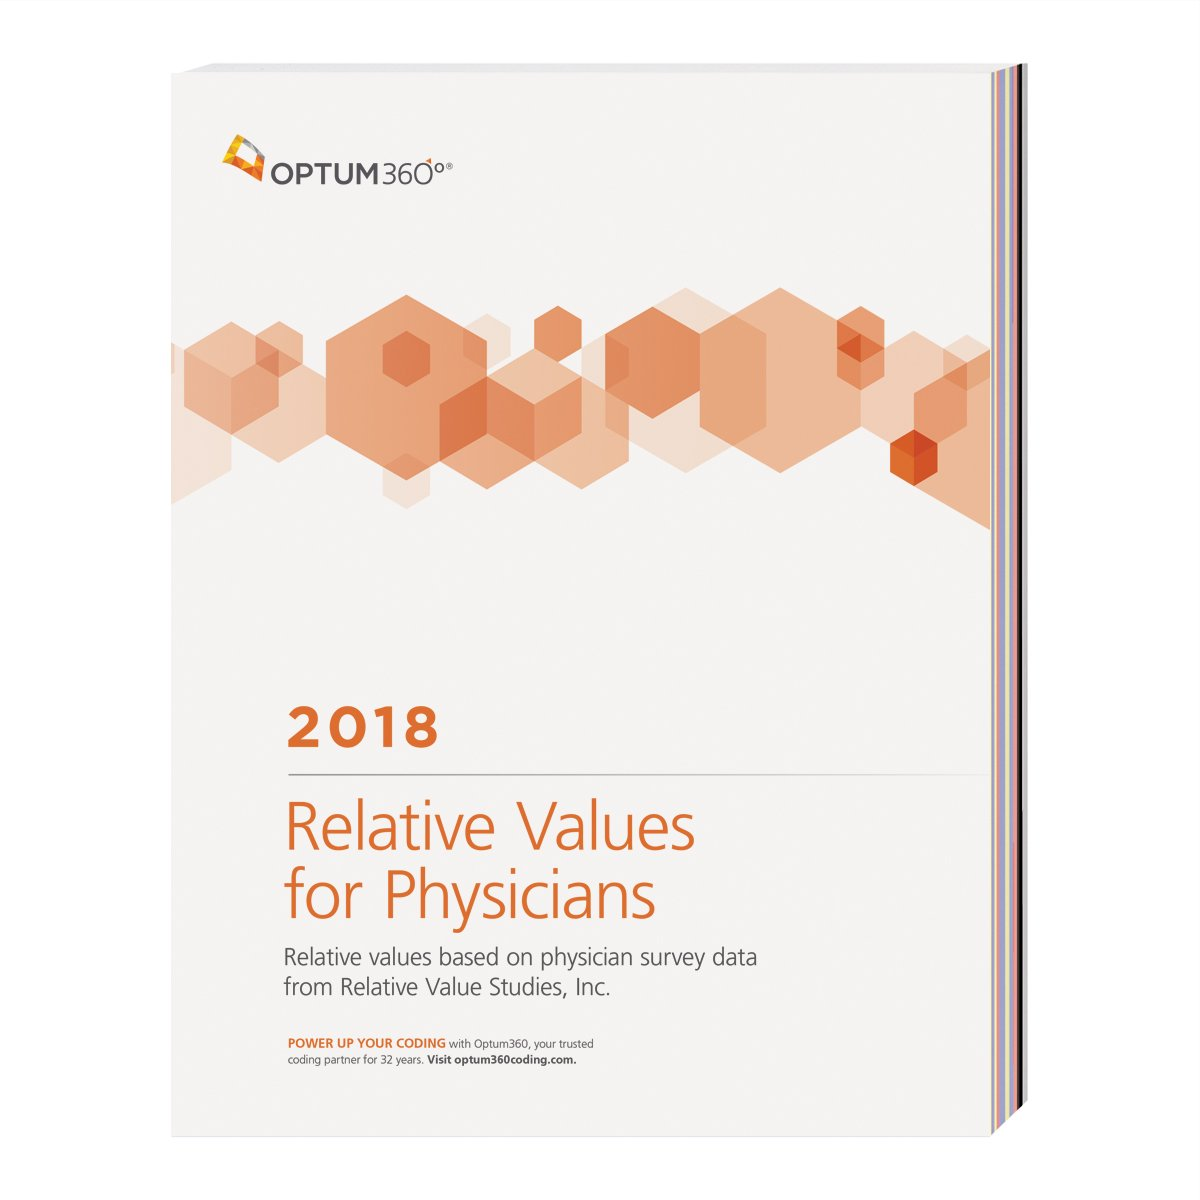 Relative Values for Physicians 2018: Relative Values Based on Physician Survey Data from Relative Value Studies, Inc.